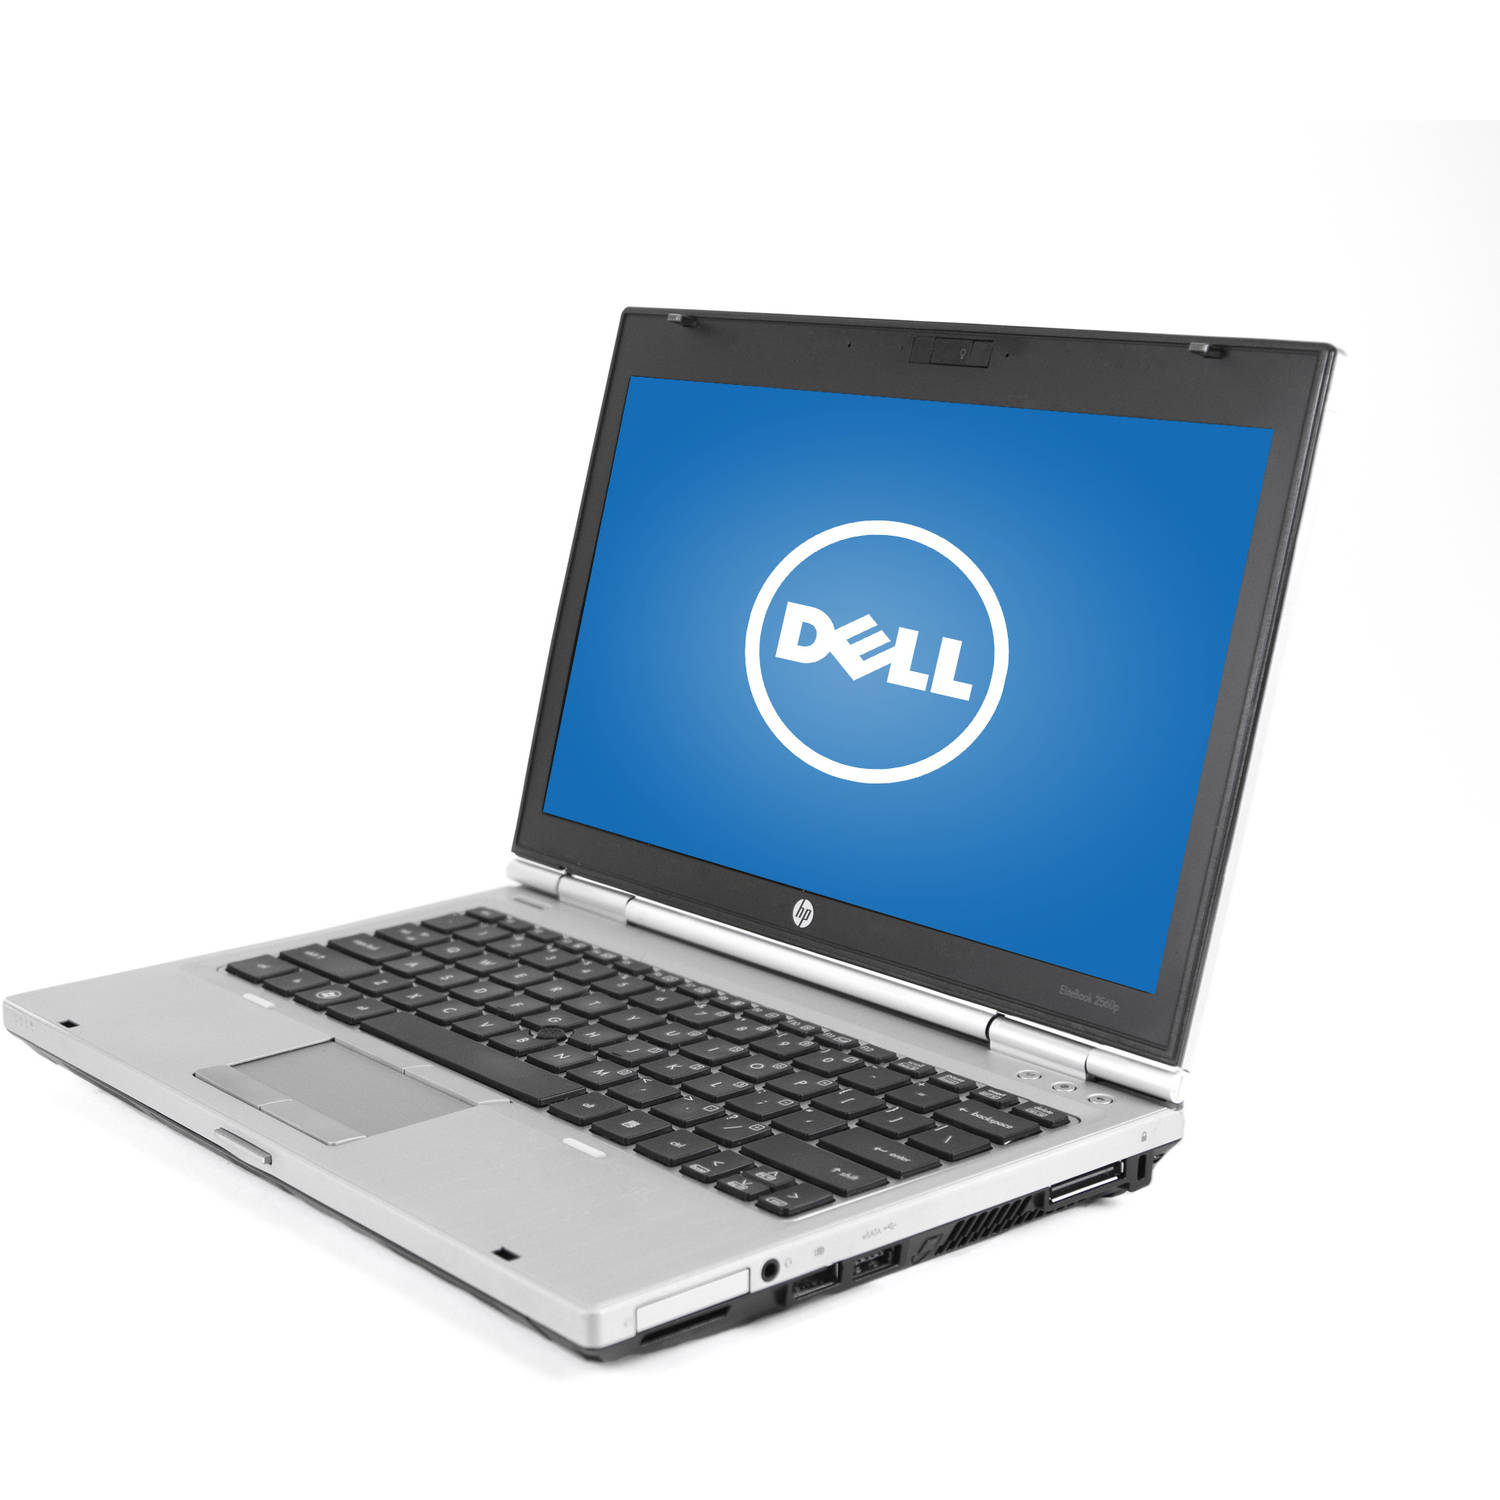 """Refurbished HP Silver 12.5"""" 2560P Elitebook Laptop PC with Intel Core i7-2620M Processor, 16GB Memory, 256GB Solid State Drive and Windows 7 Professional"""